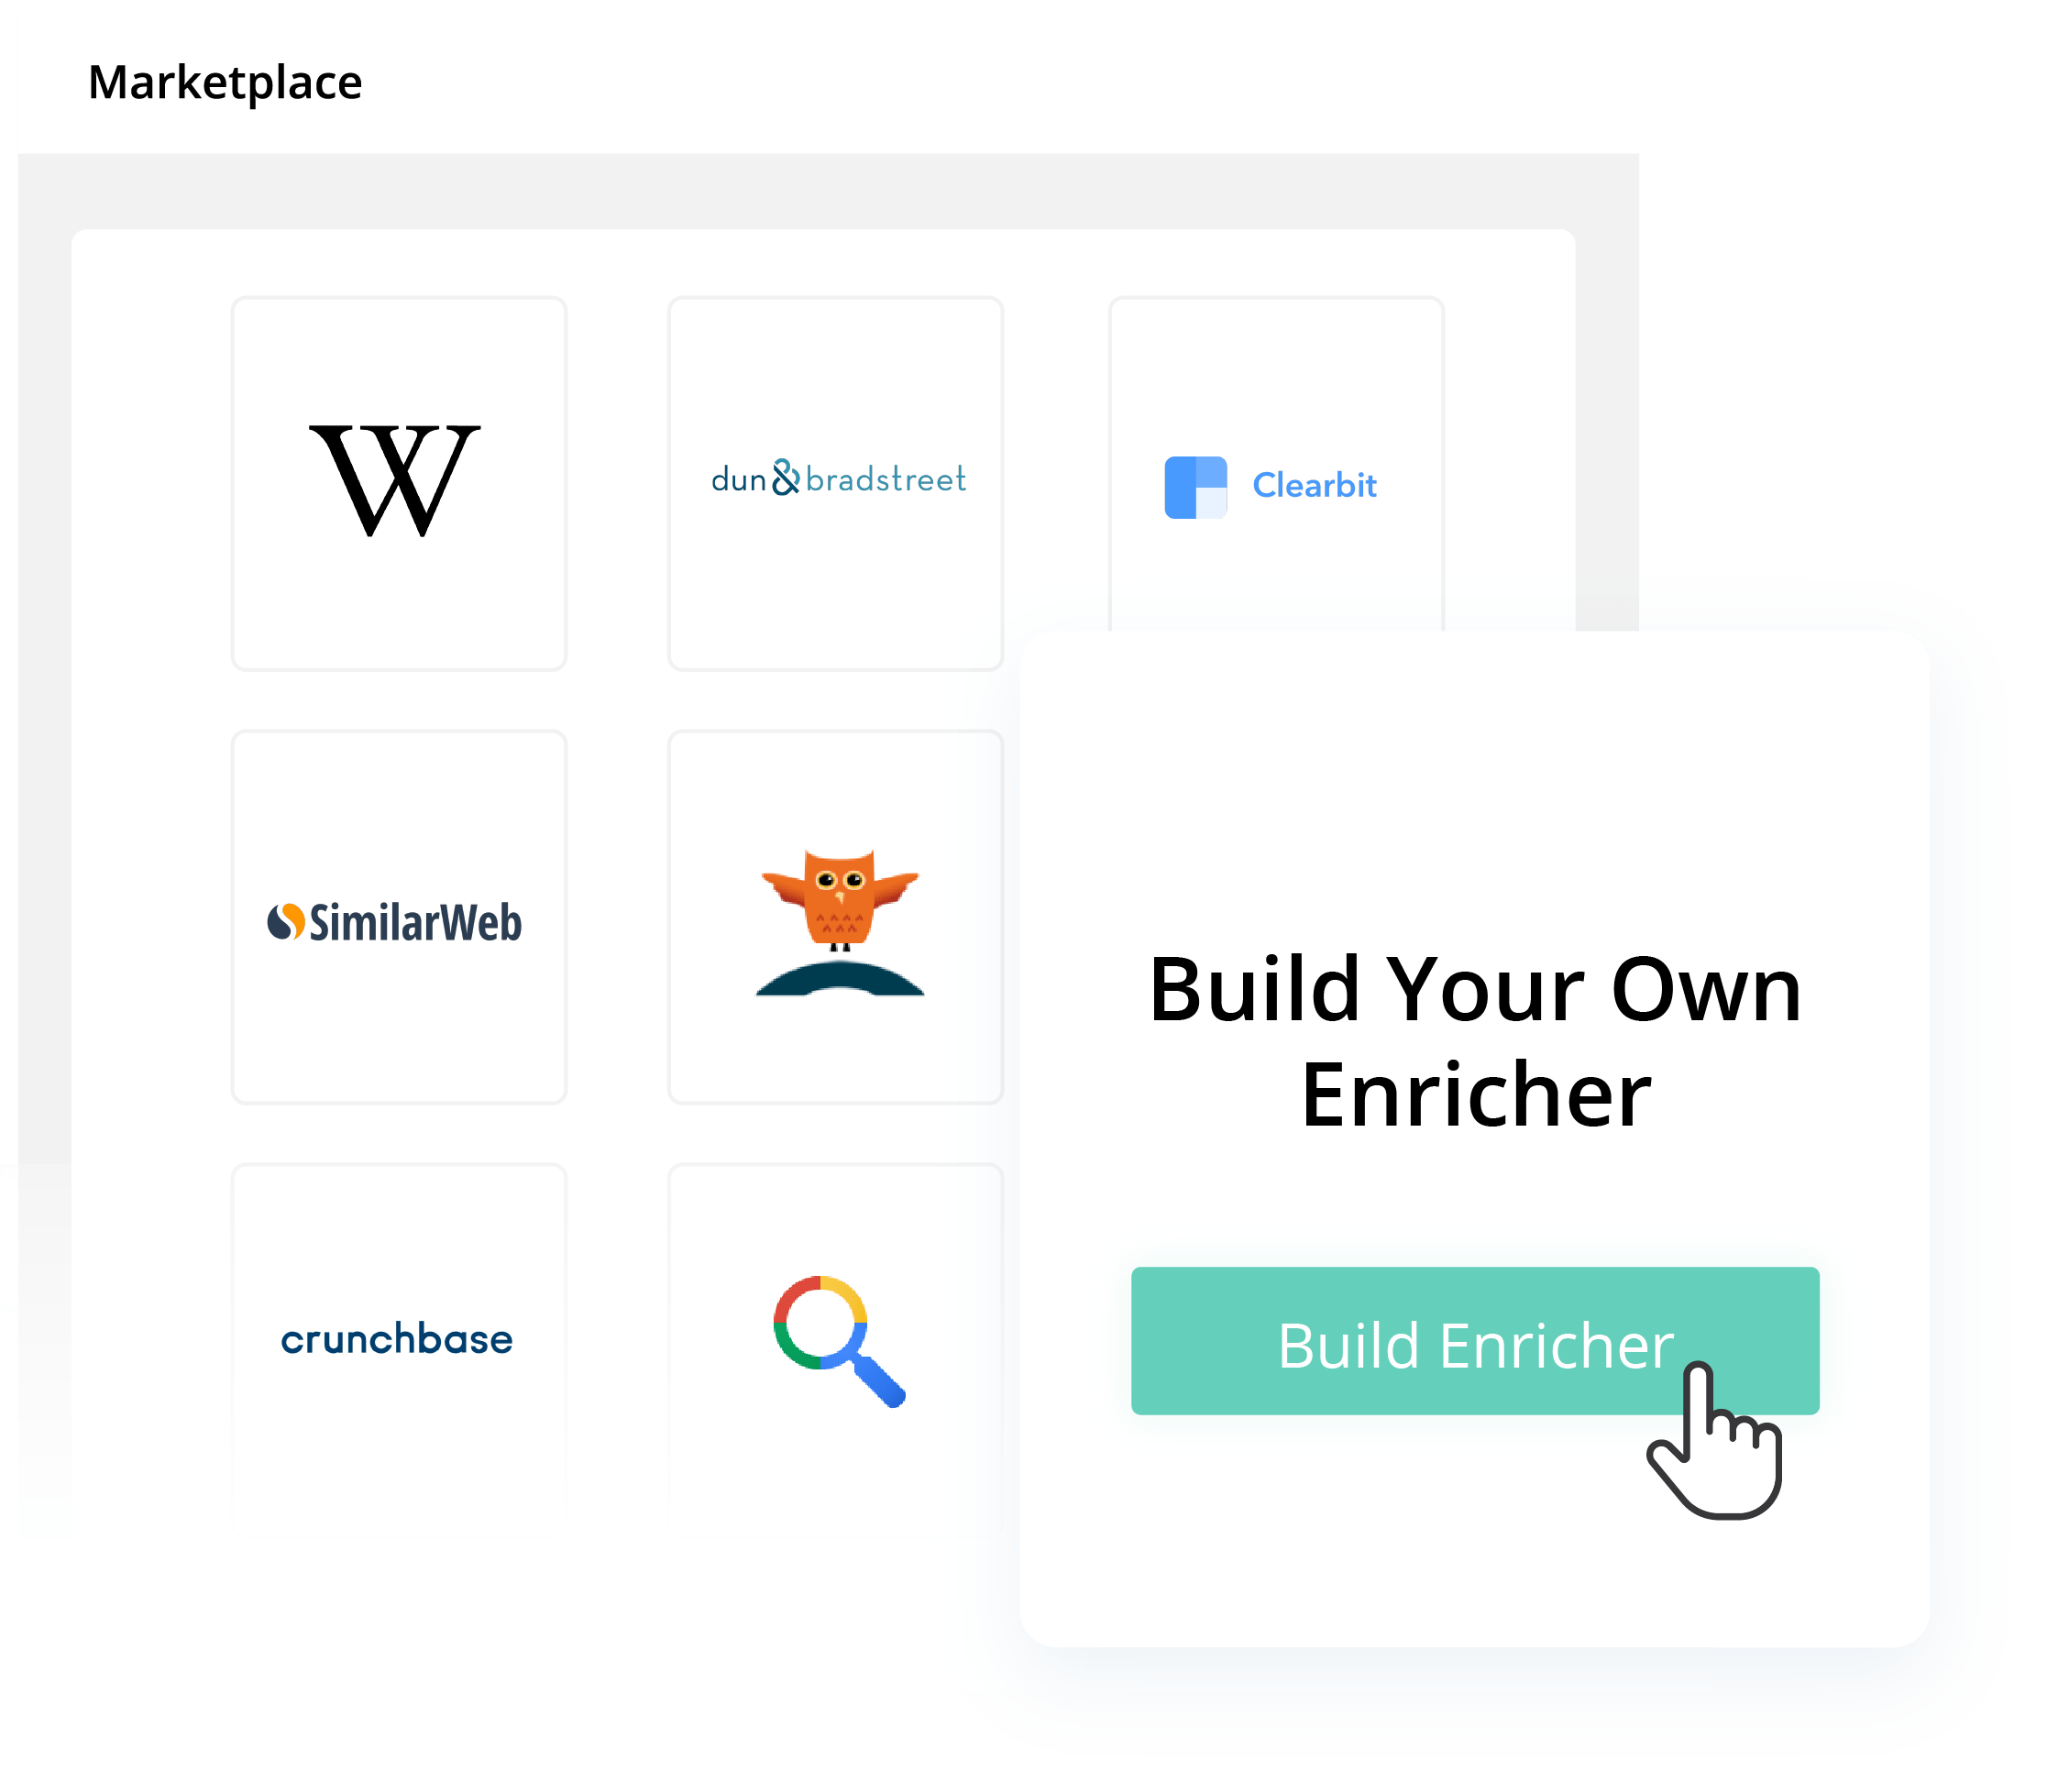 Build your own enricher